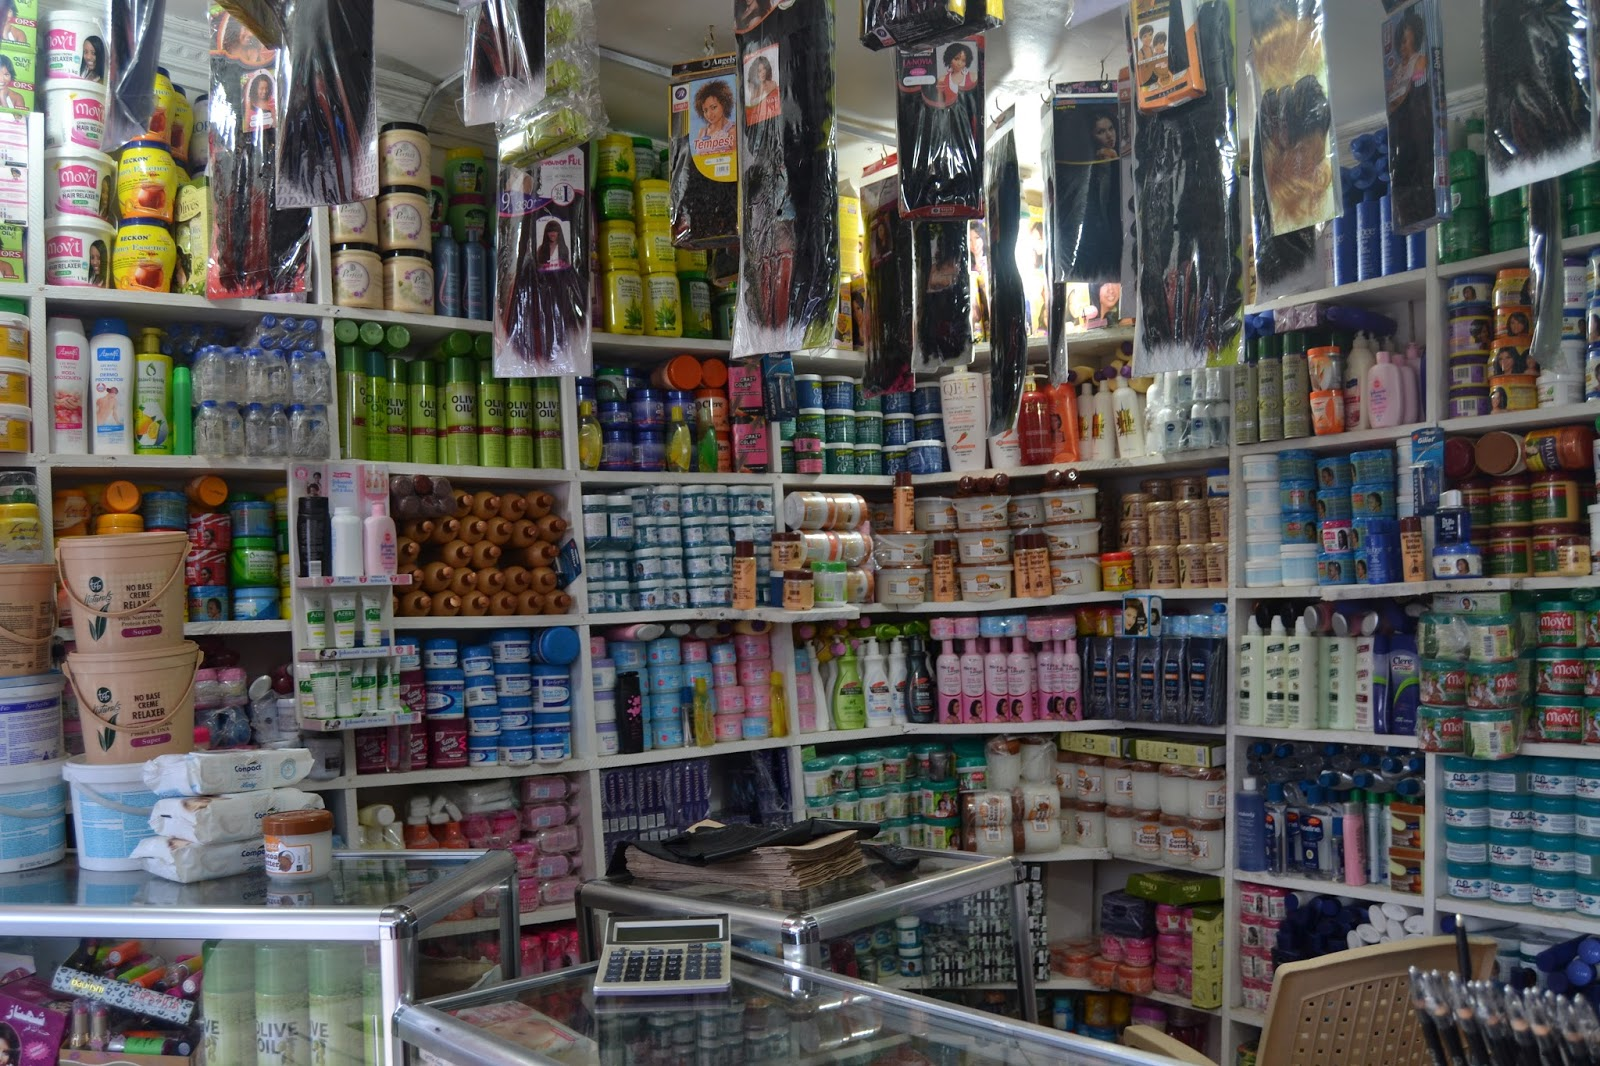 Standards on beauty products business stressed